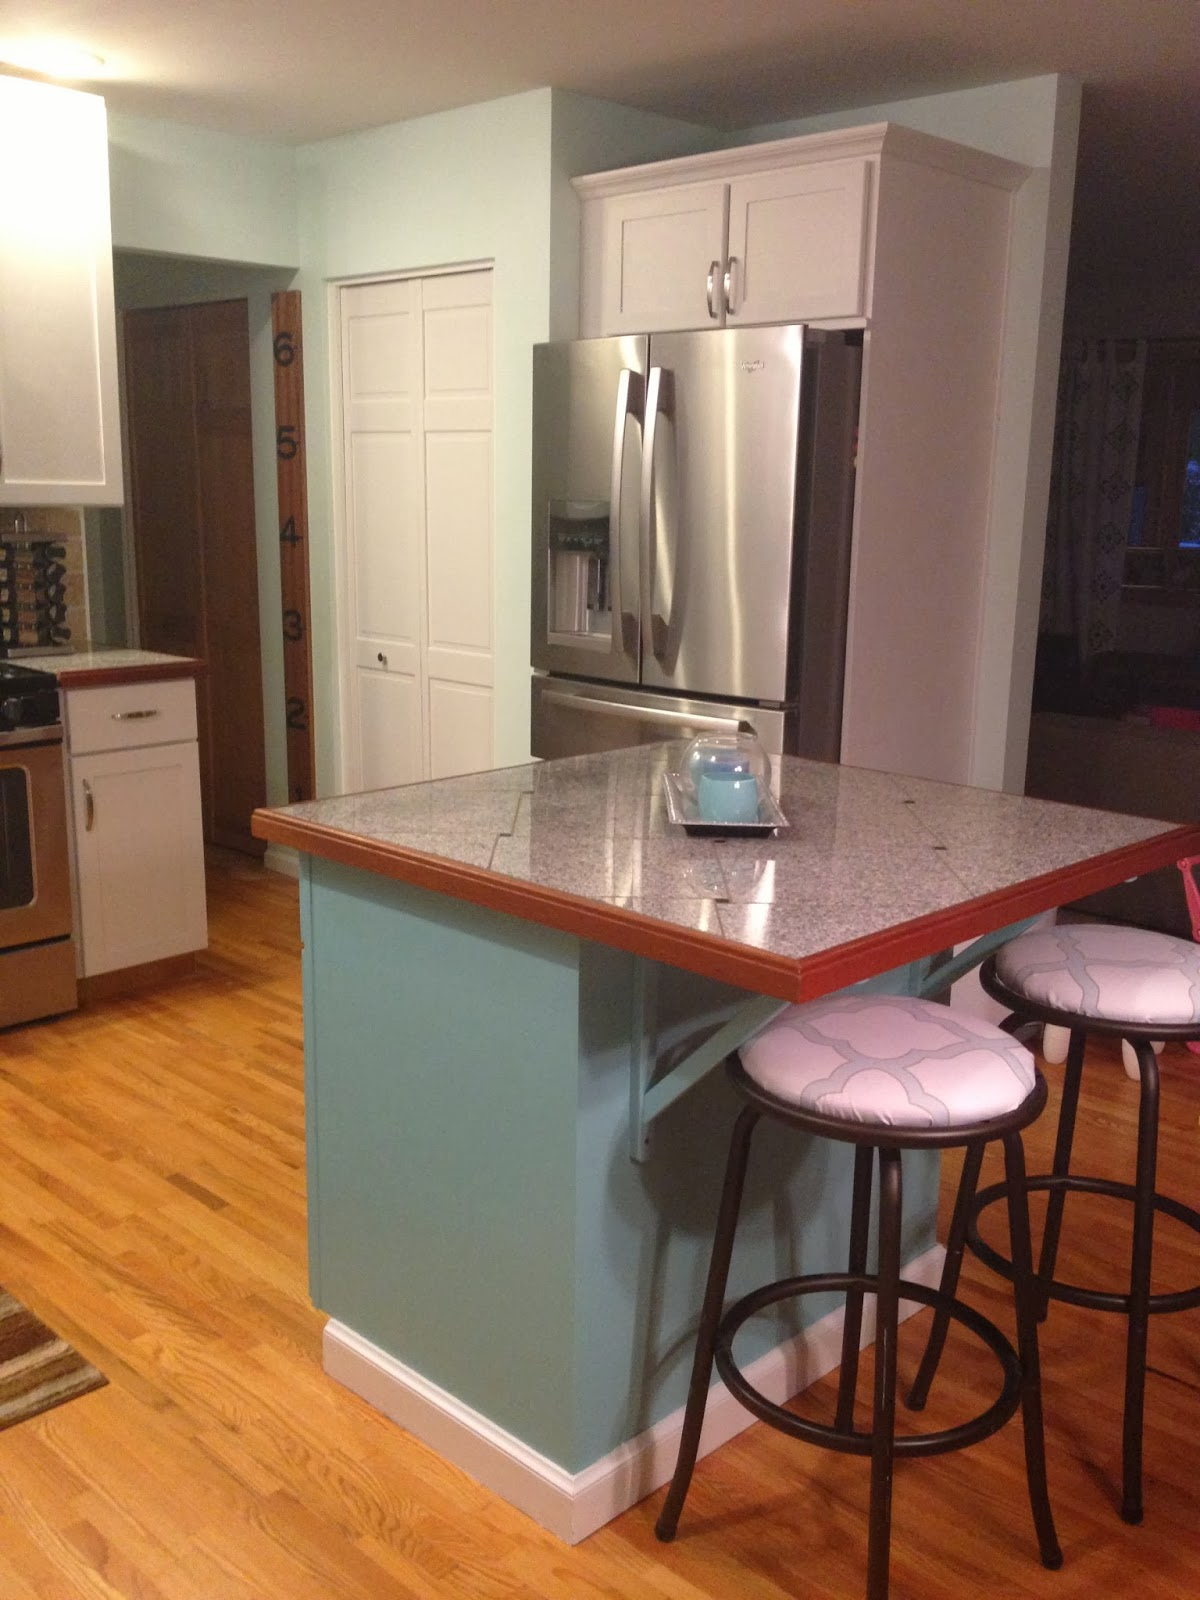 So my new kitchen led to a lot of extra old kitchen cabinets!